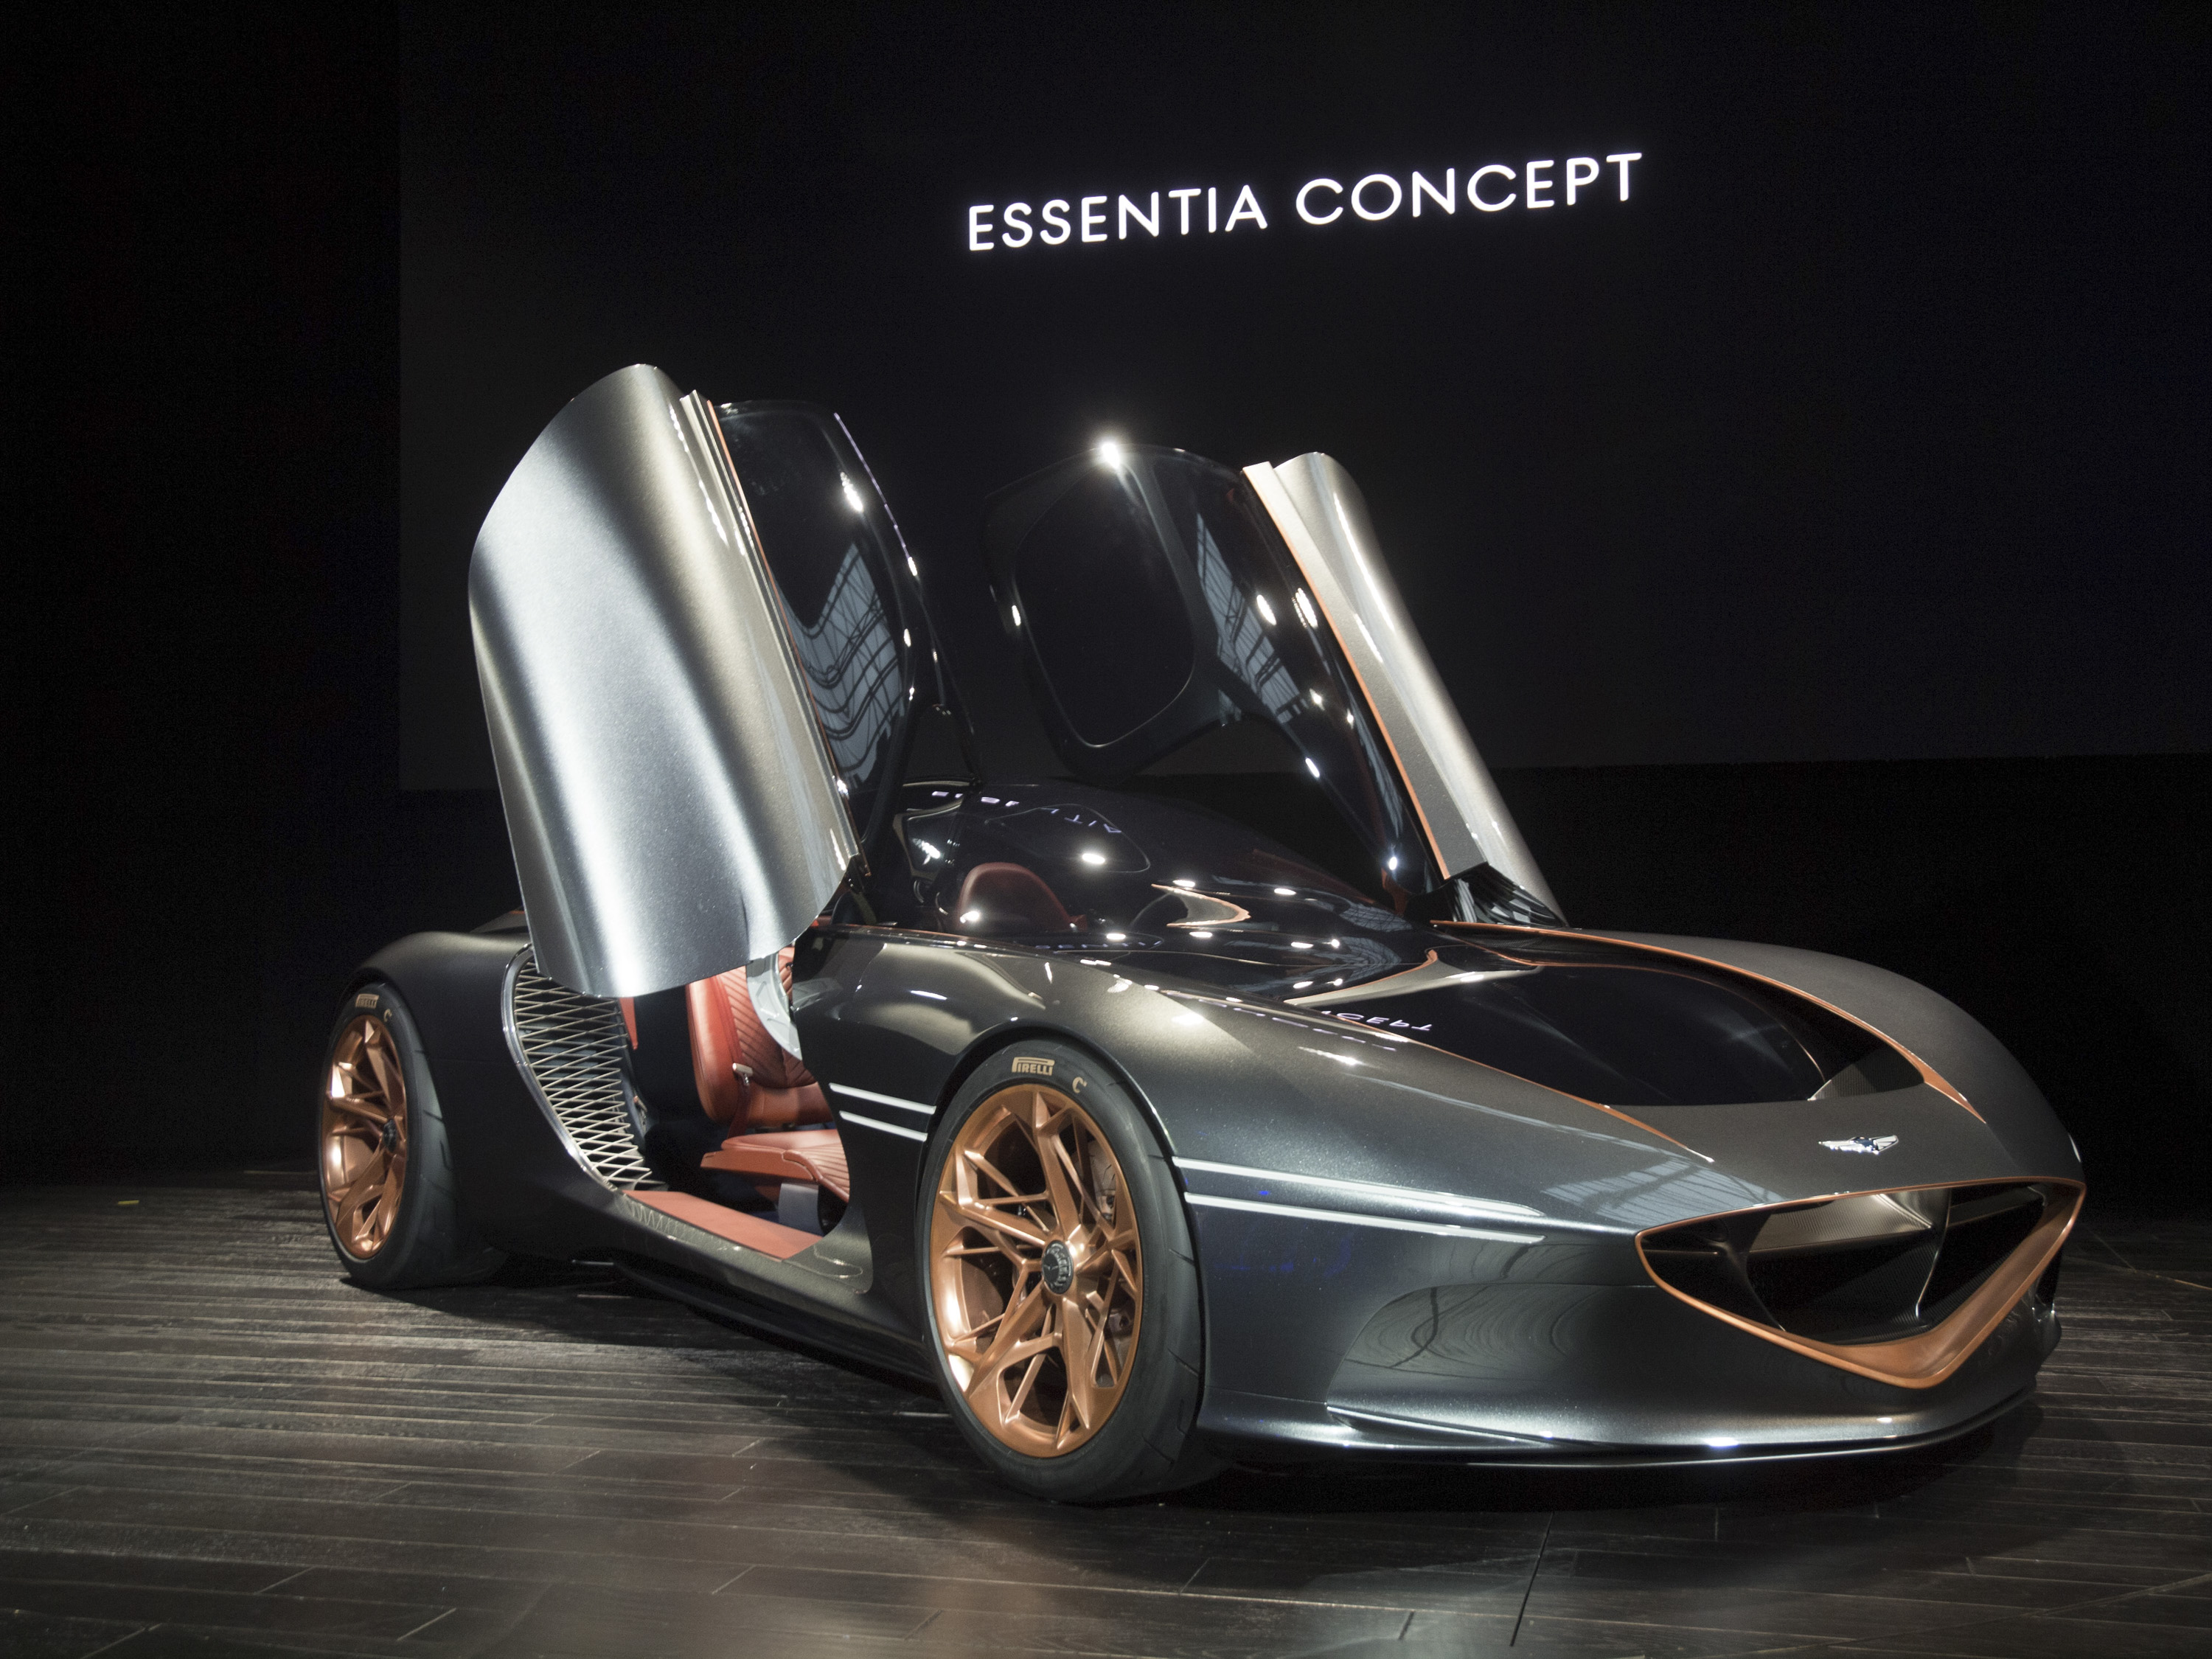 If Genesis Boss Has His Way The Essentia Concept Will Make It To